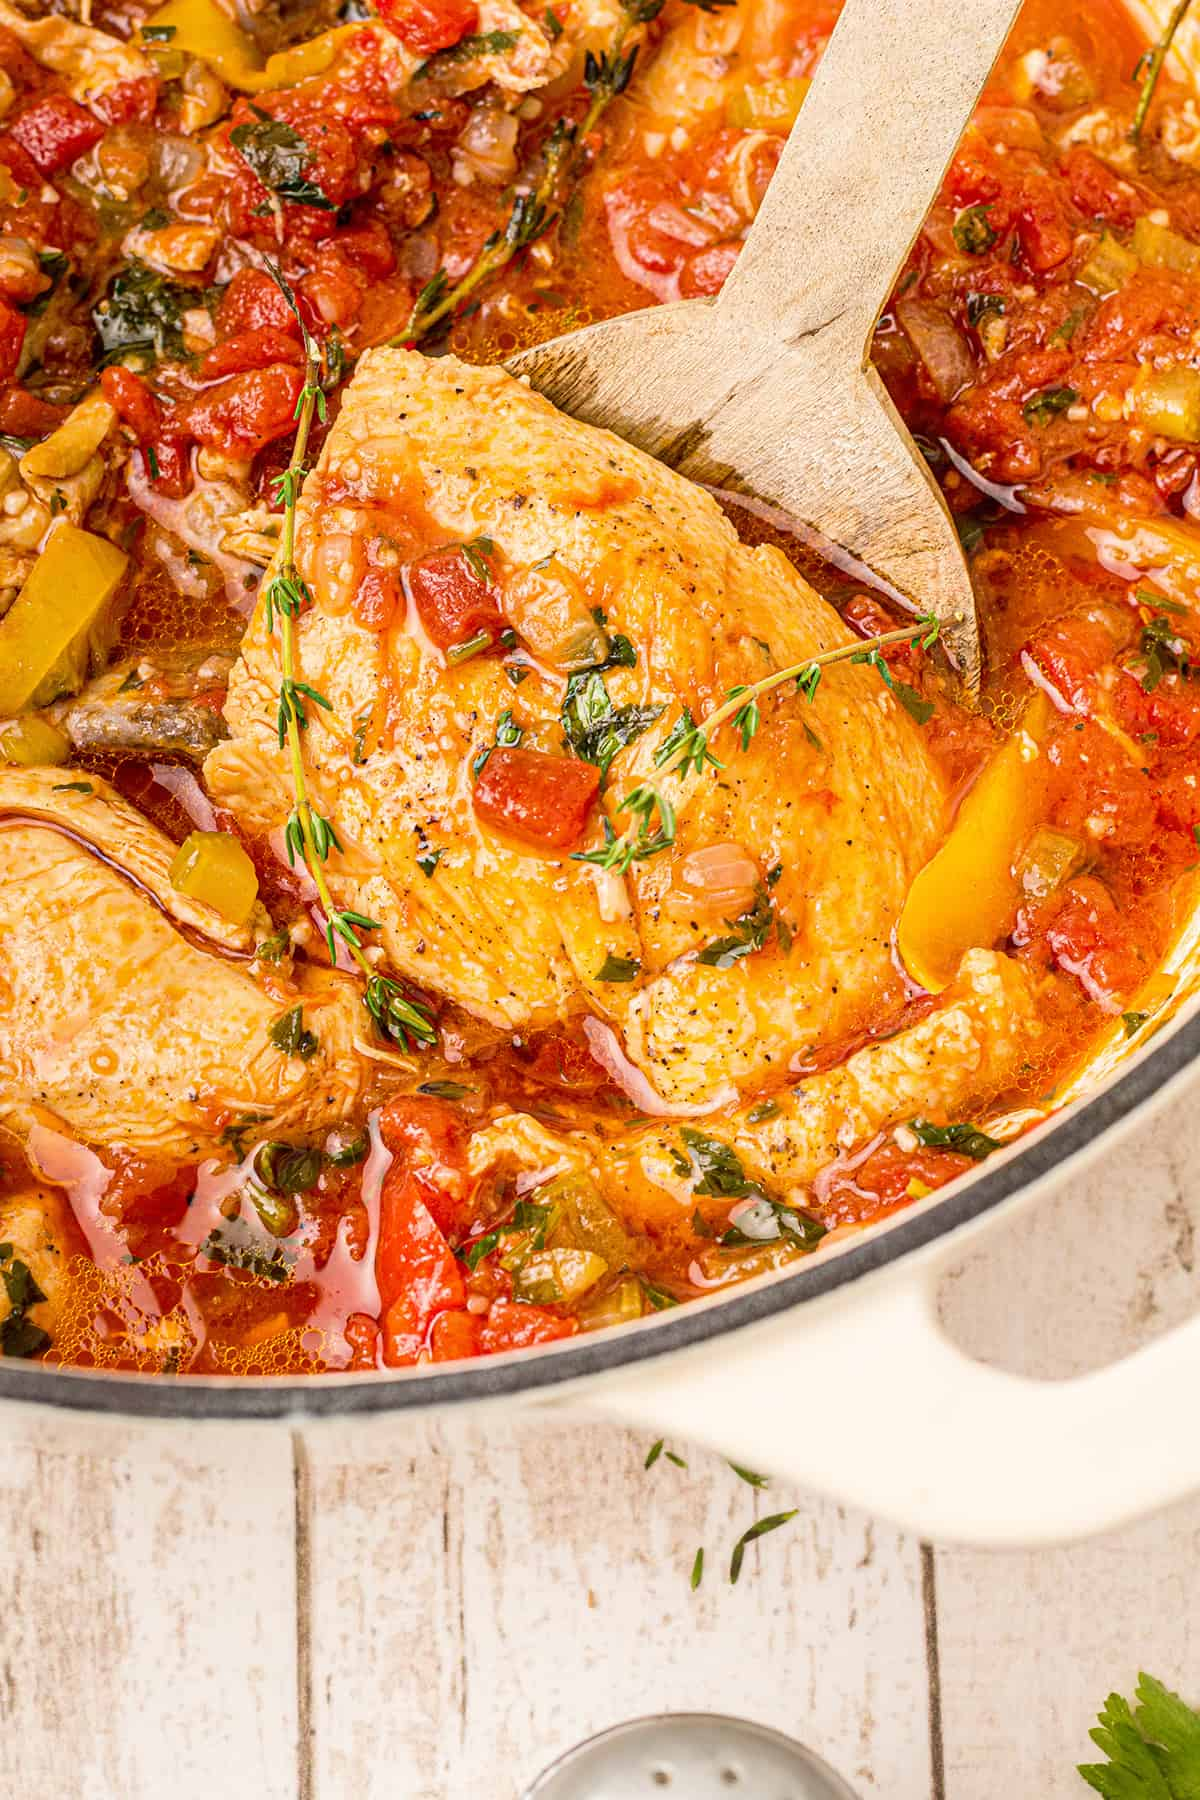 Dutch oven chicken cacciatore in a cooking pot along with a wooden spoon.